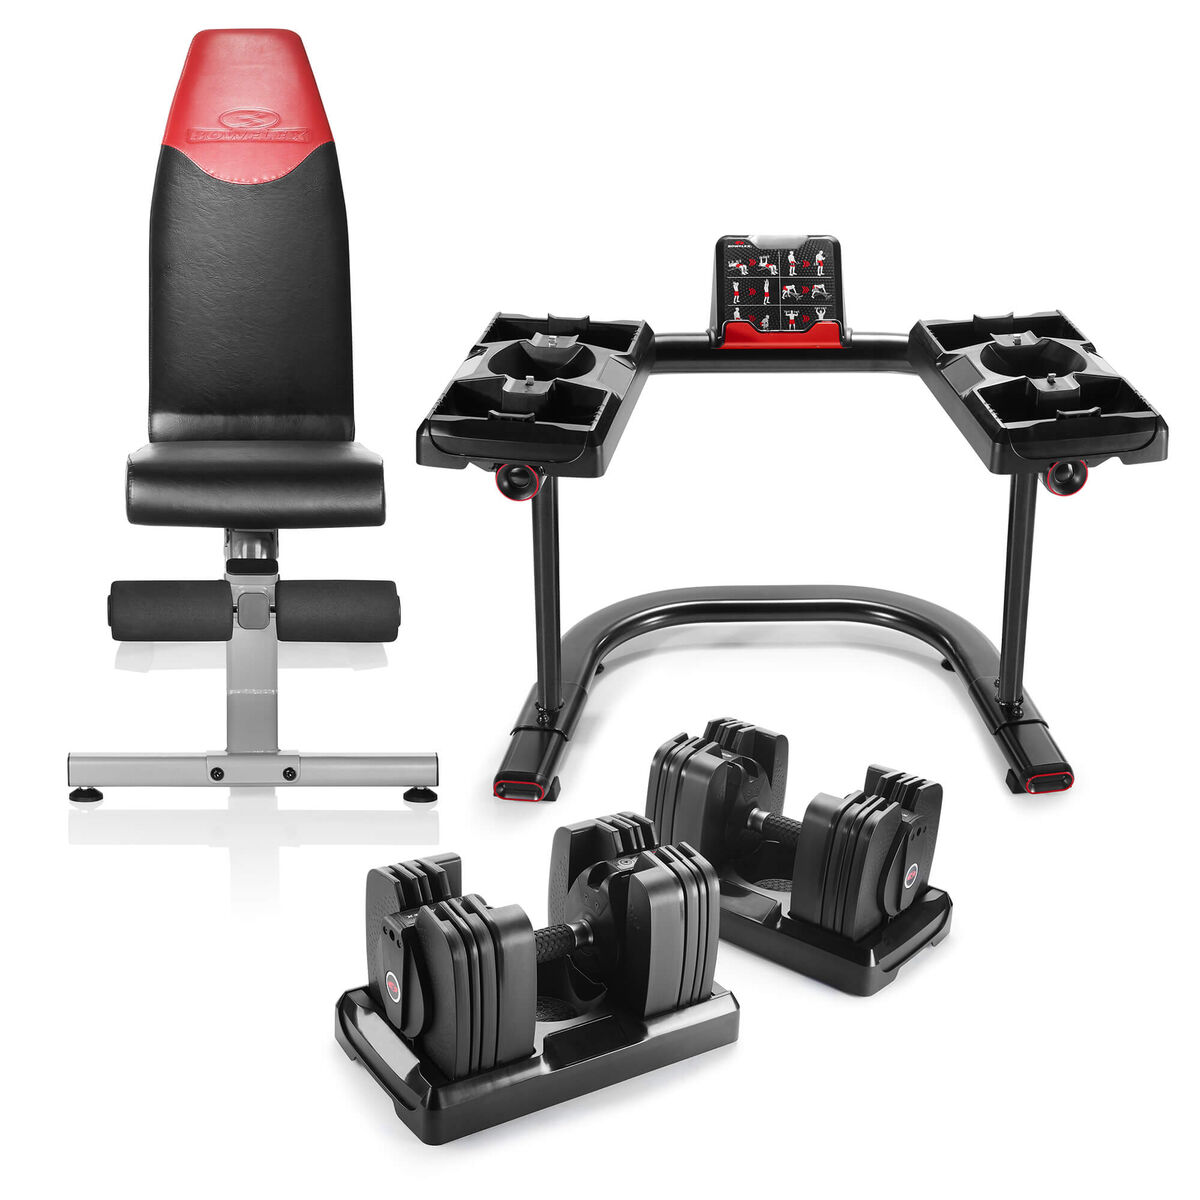 Bowflex Selecttech 560 Bench And Stand Bundle Bowflex Bowflex